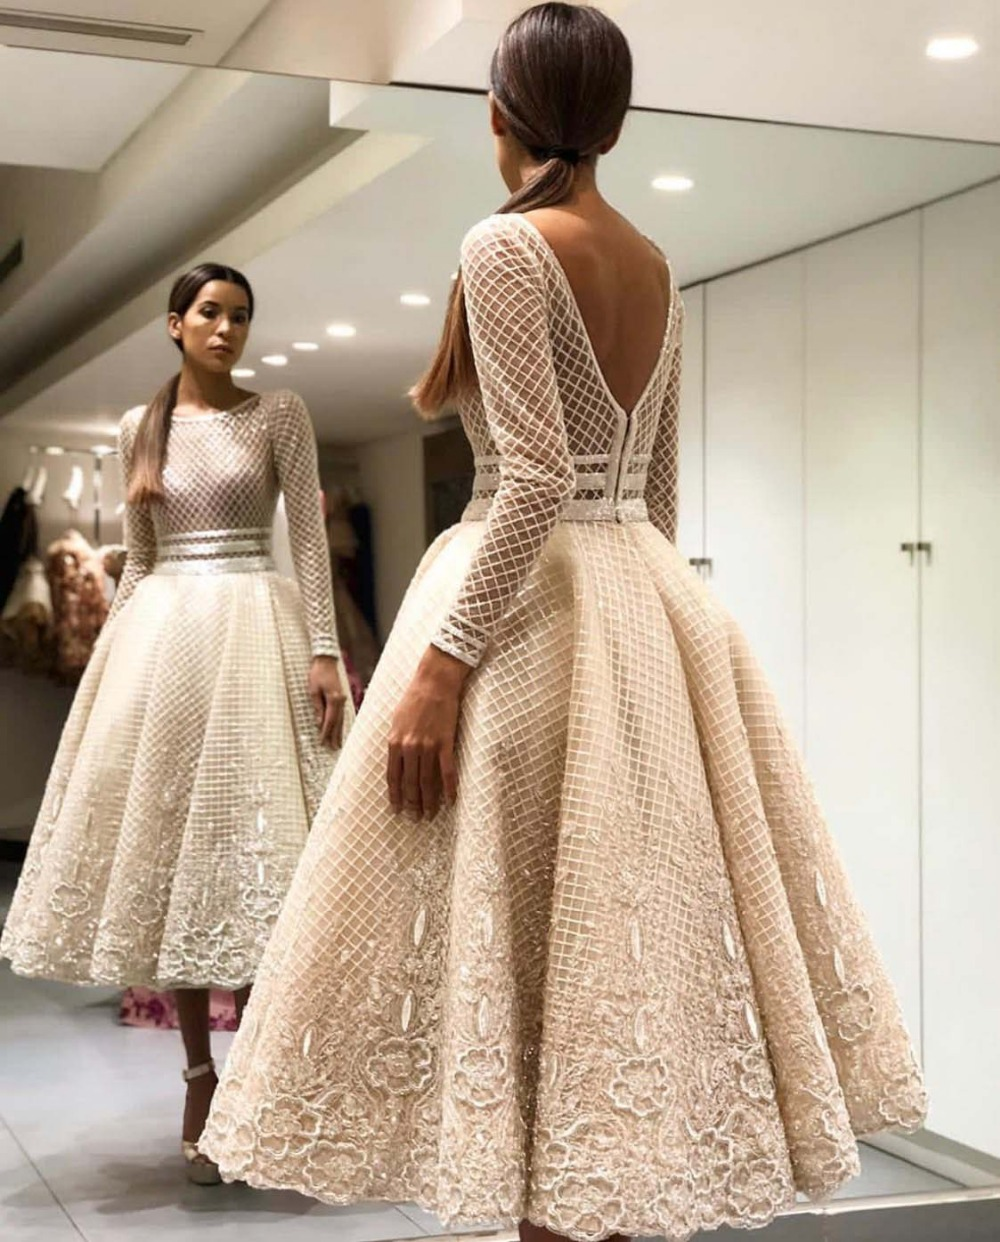 Elegant Bige Color Unique Lace Cocktail Dresses Full Sleeves V-Back Ankle Length Prom Gowns 2019 Robe De Soiree Party Dresses